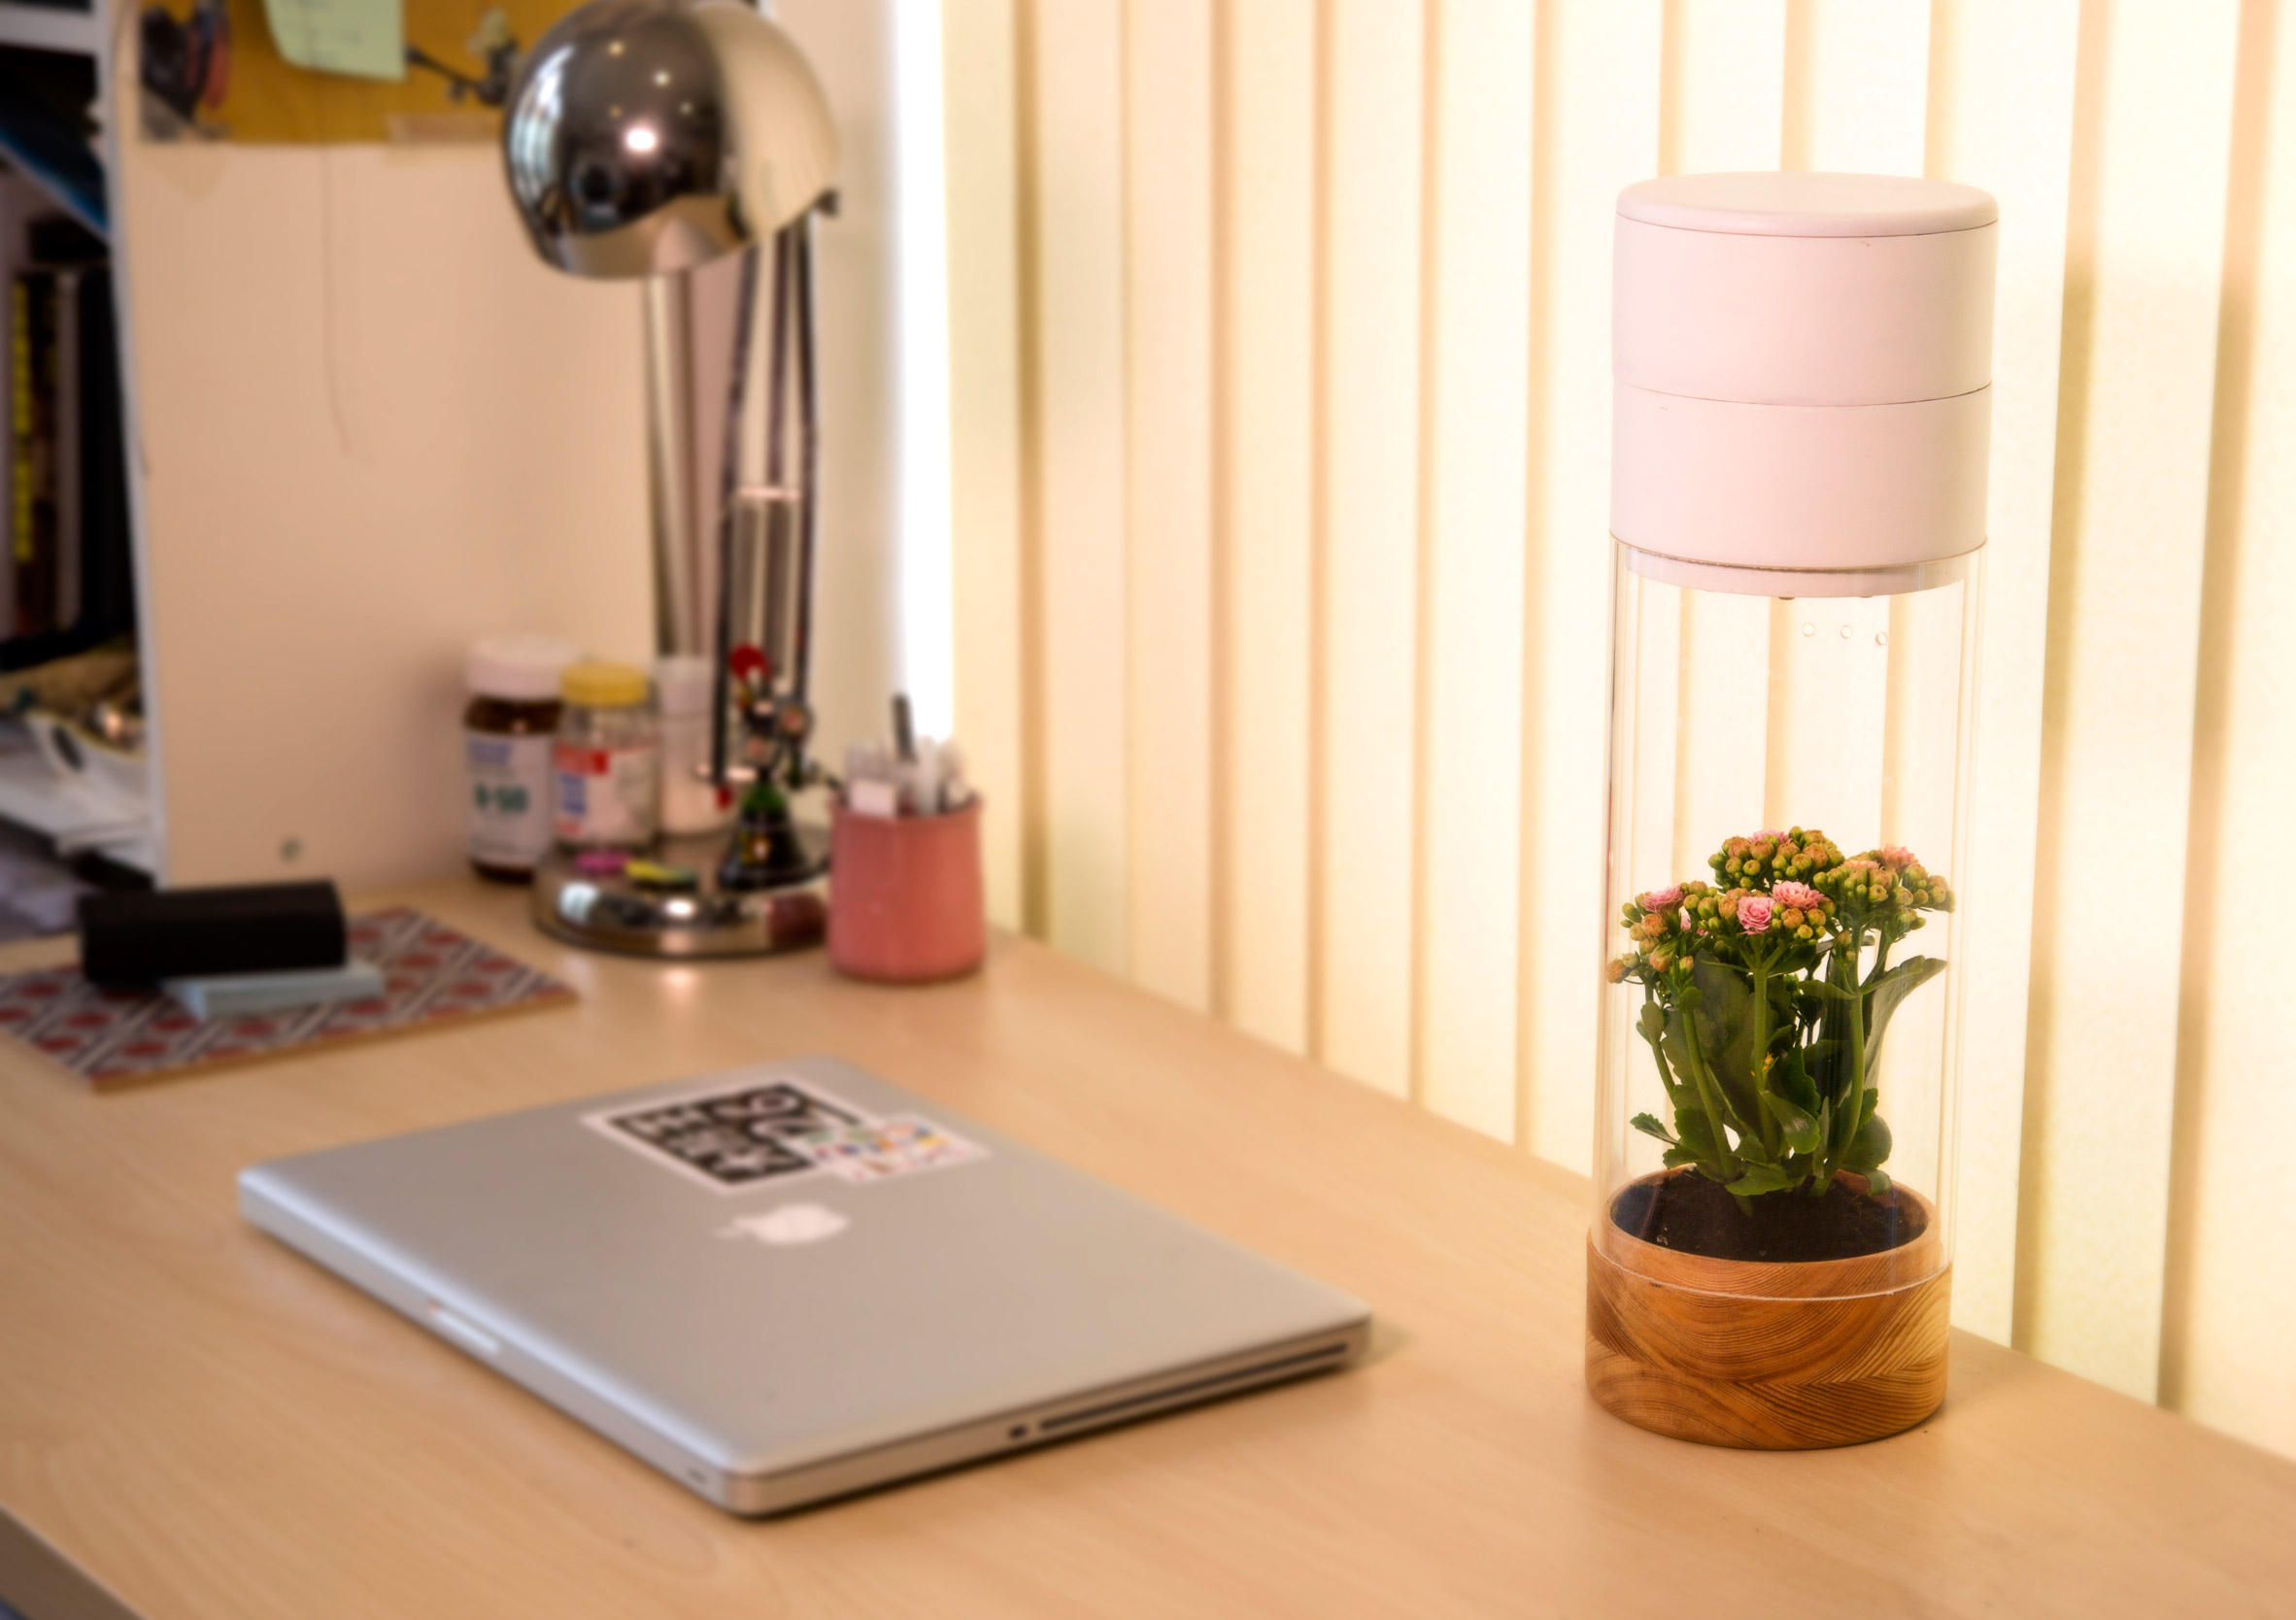 Phabit device rewards your daily exercise by keeping a plant alive